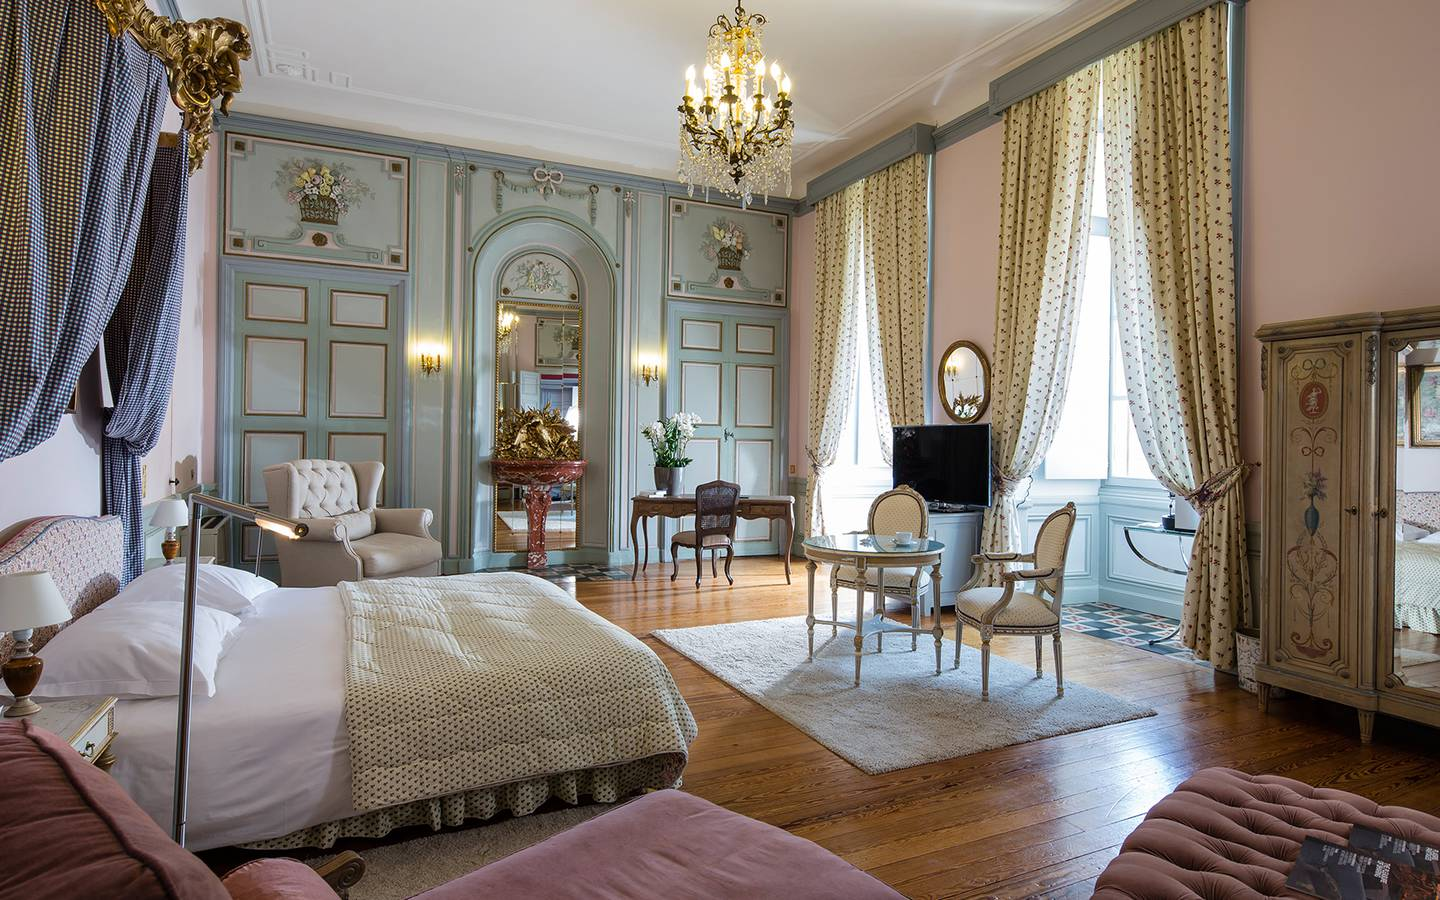 Stunning chambre dhotel de luxe 2 photos design trends for Chambre de france